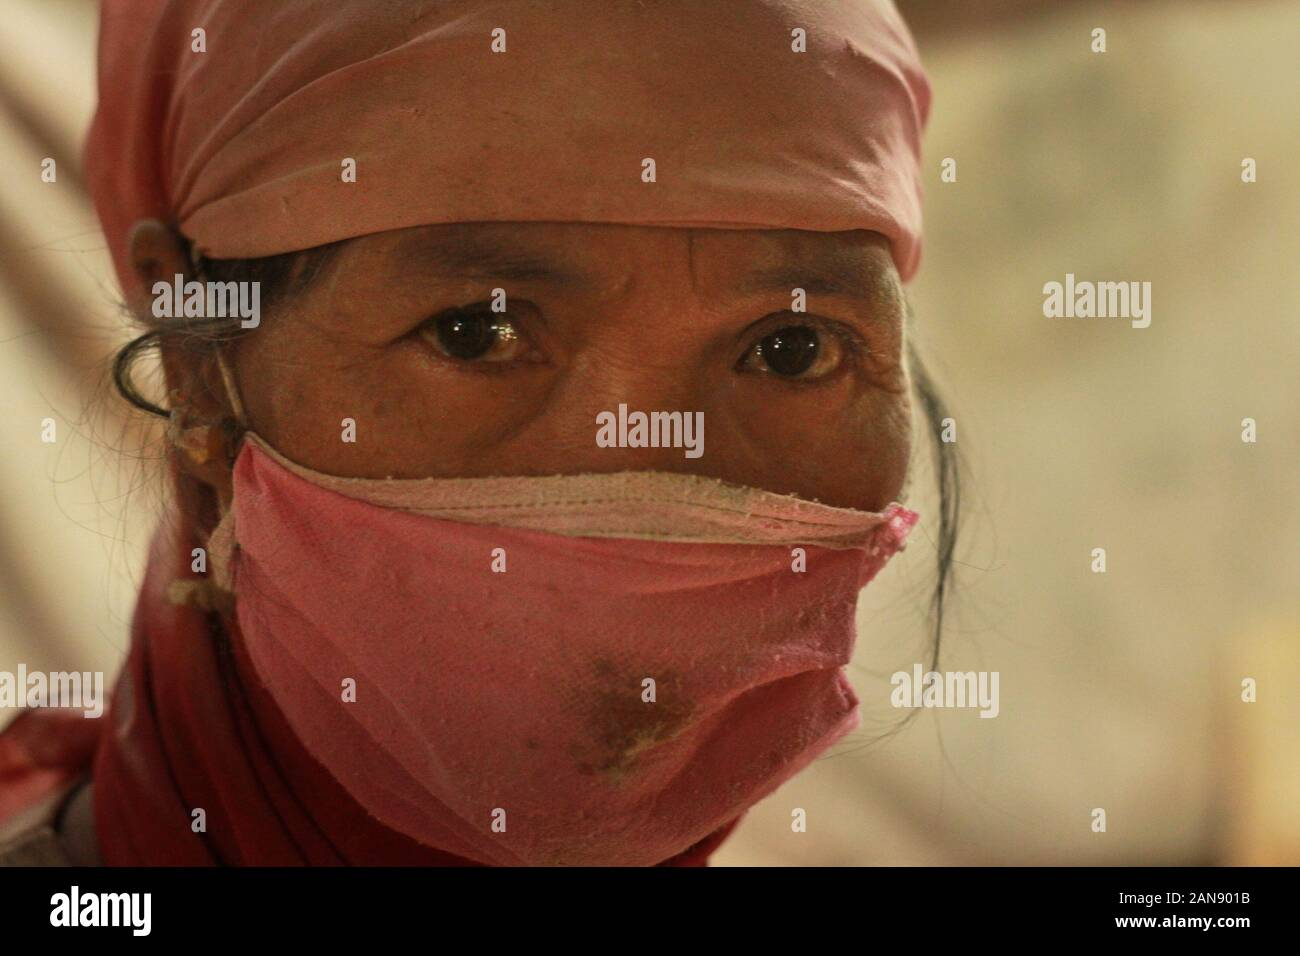 Malang Indonesia 16th Jan 2020 Masemi 55 Years Old An Incense Maker In Her Hijab With A Mask During The Incense Making As The Chinese New Year Approaches Incense Demand Is Increasing And